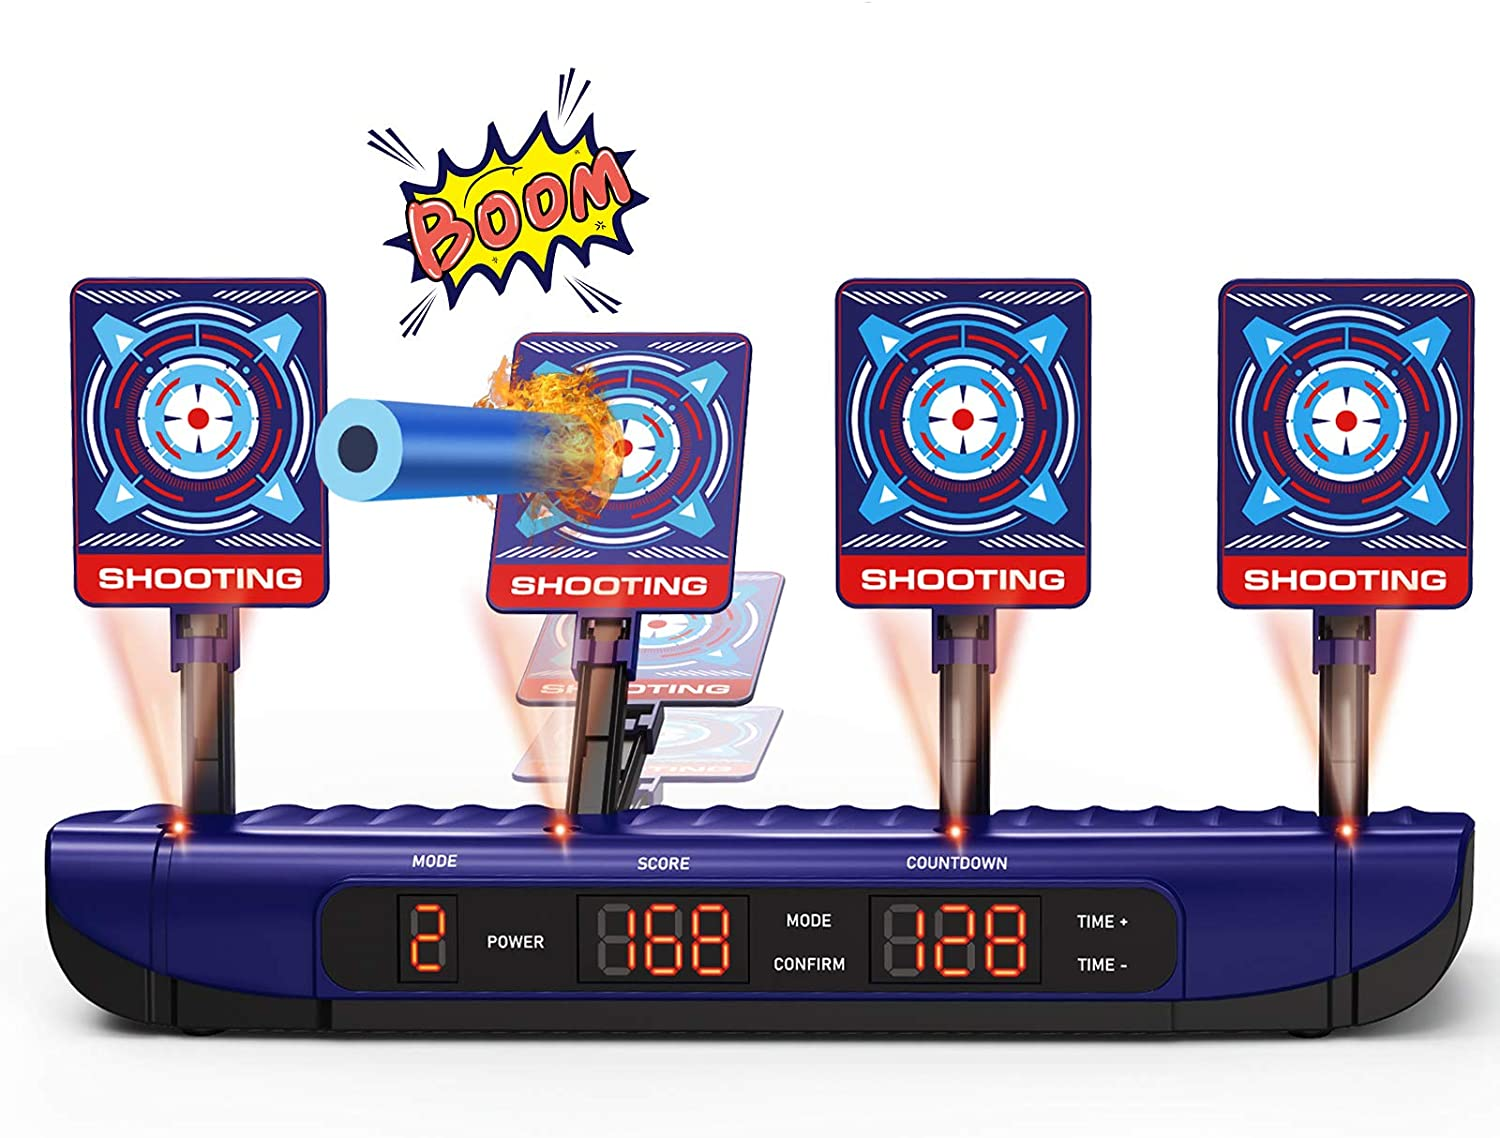 Digital Shooting Target for Foam Dart Gun, Auto Reset Nerf Shooting Toys, 4 Targets Electronic Scoring with Light and Sound Effect, Perfect for Nerf Guns Blaster - Great Gift for Boys and Girls Age 6+